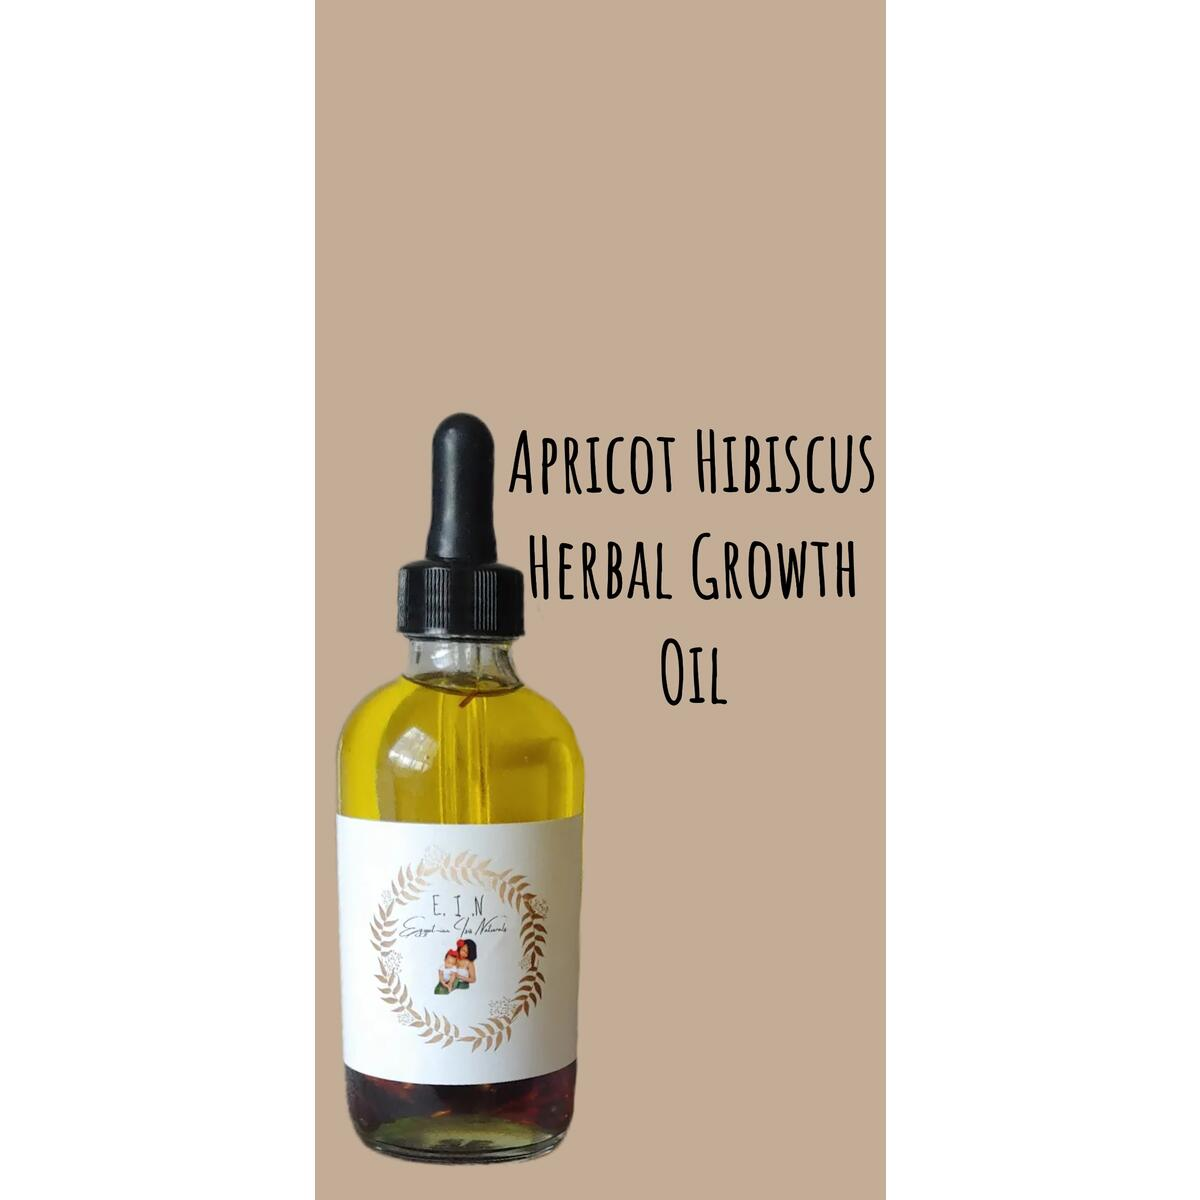 Apricot Hibiscus Herbal Growth Oil